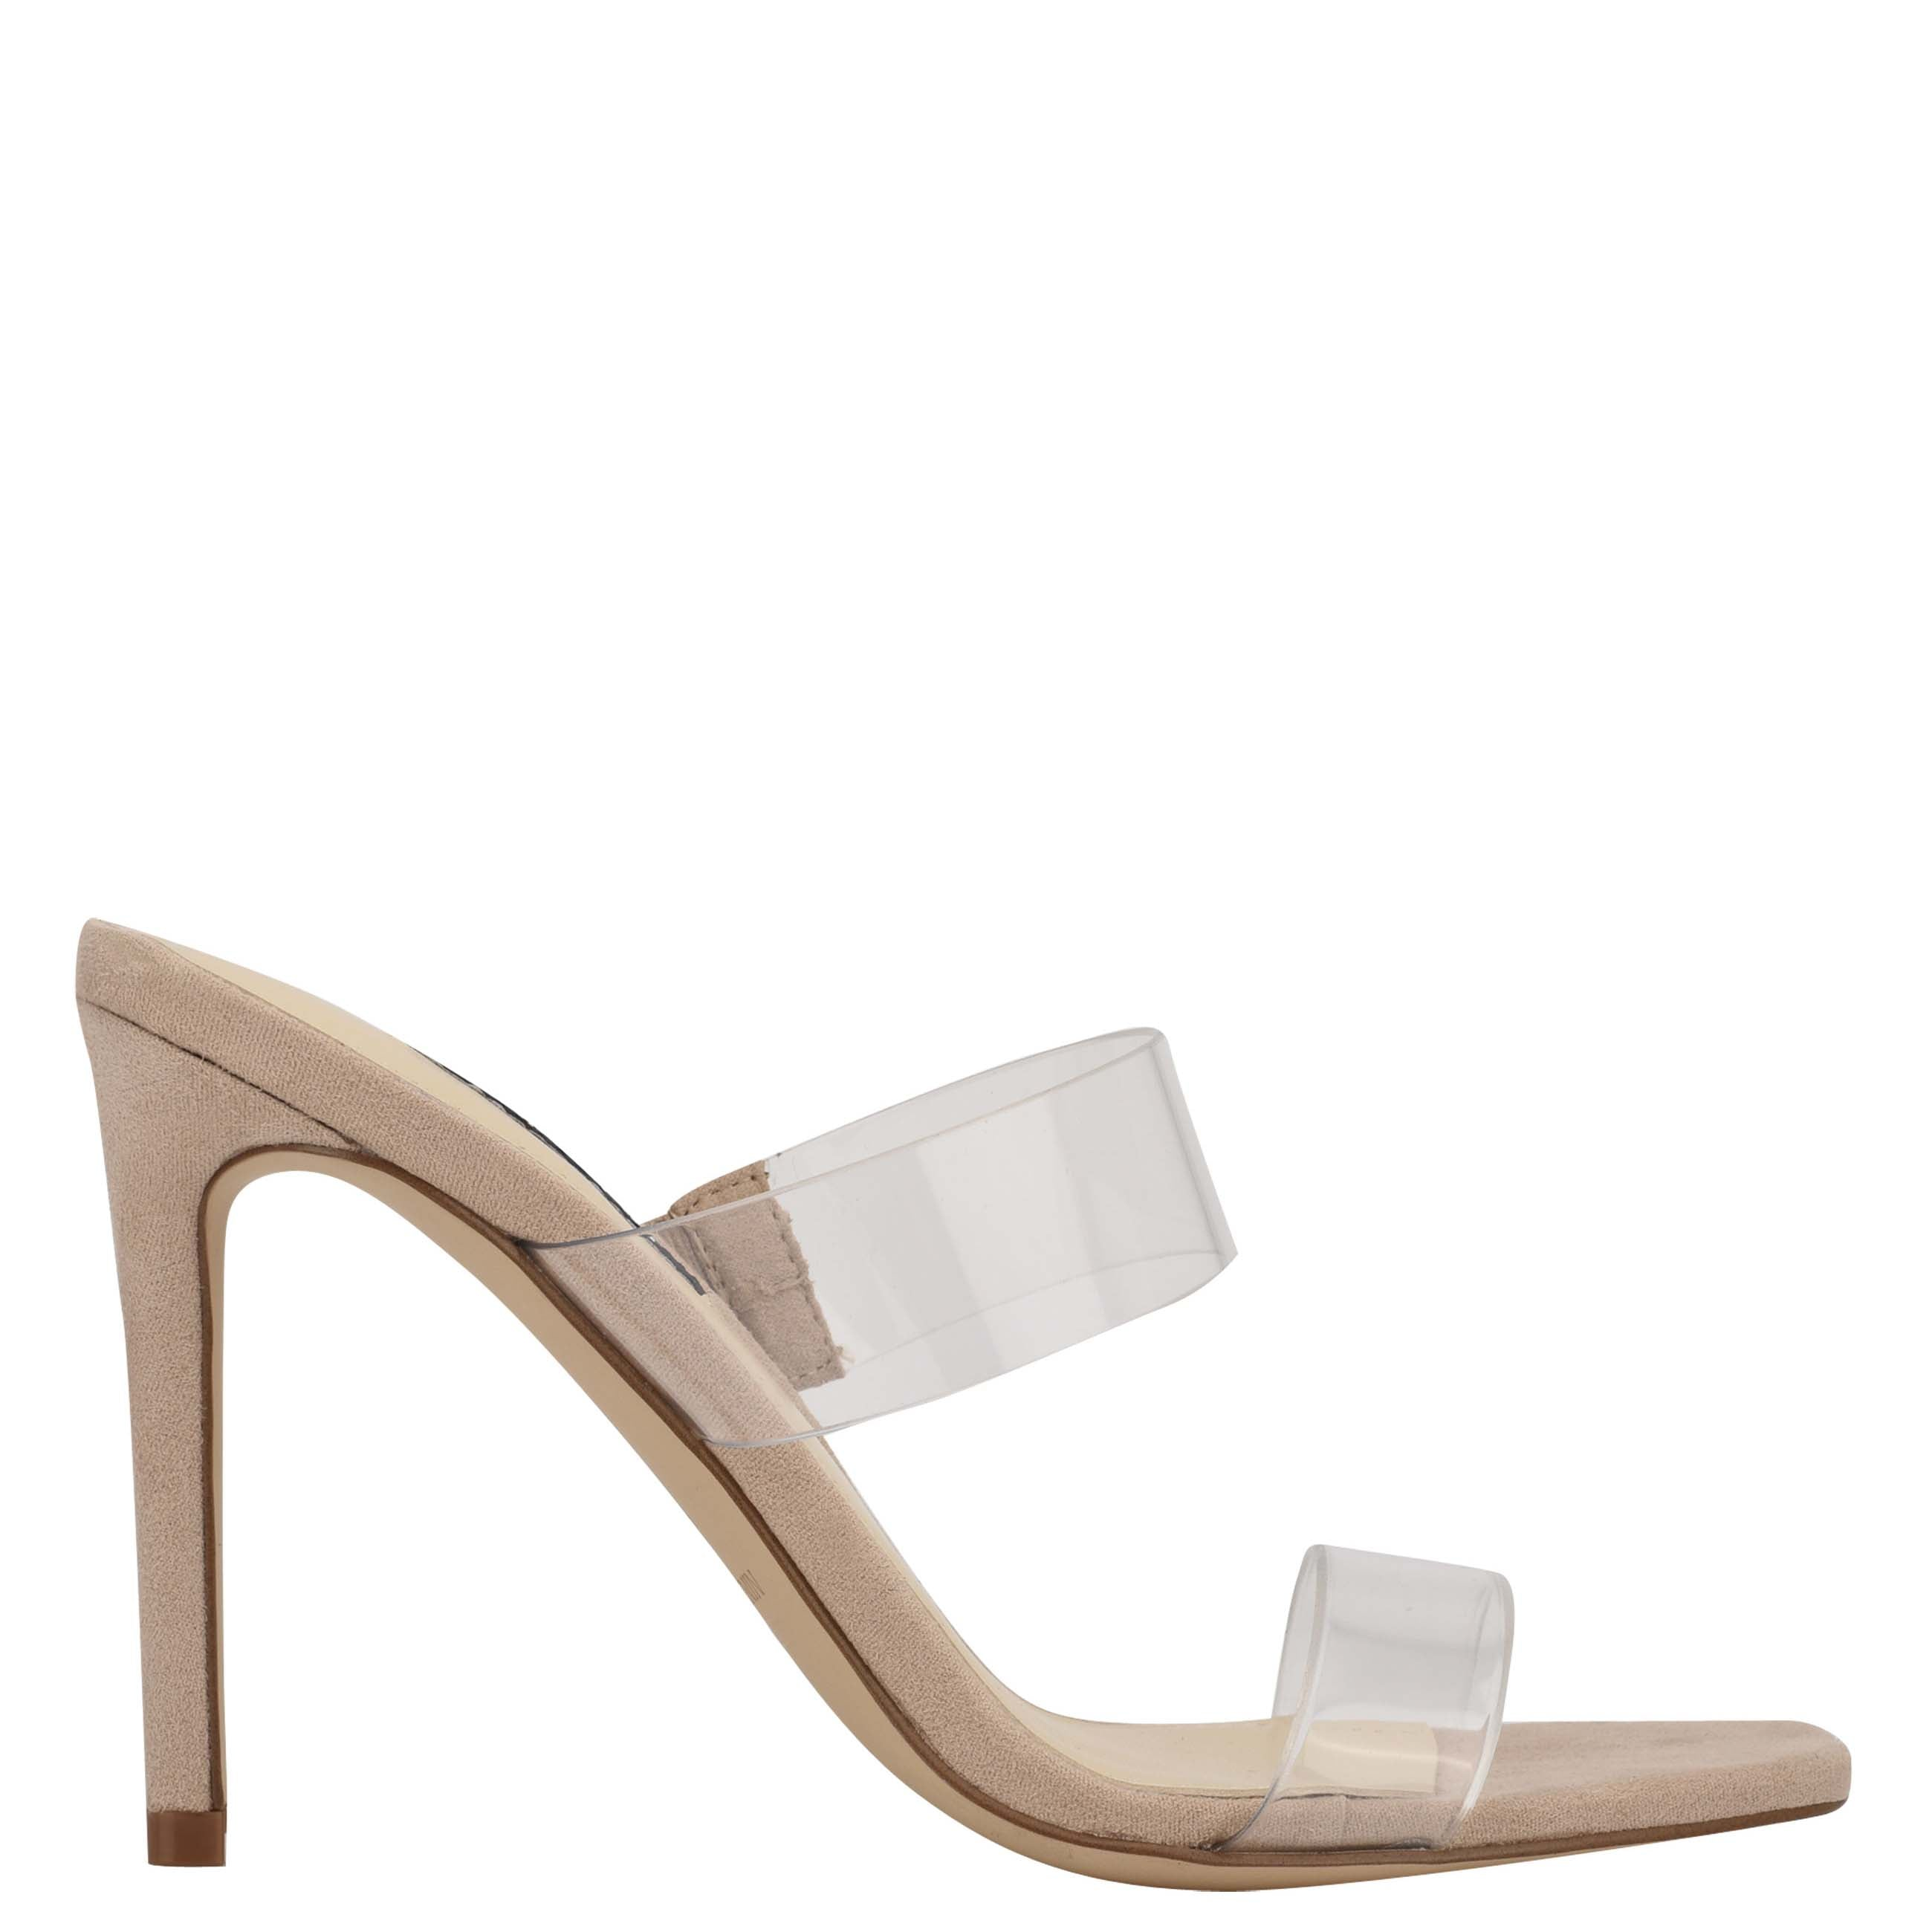 NINEWEST Zarley Heeled Slide Sandals